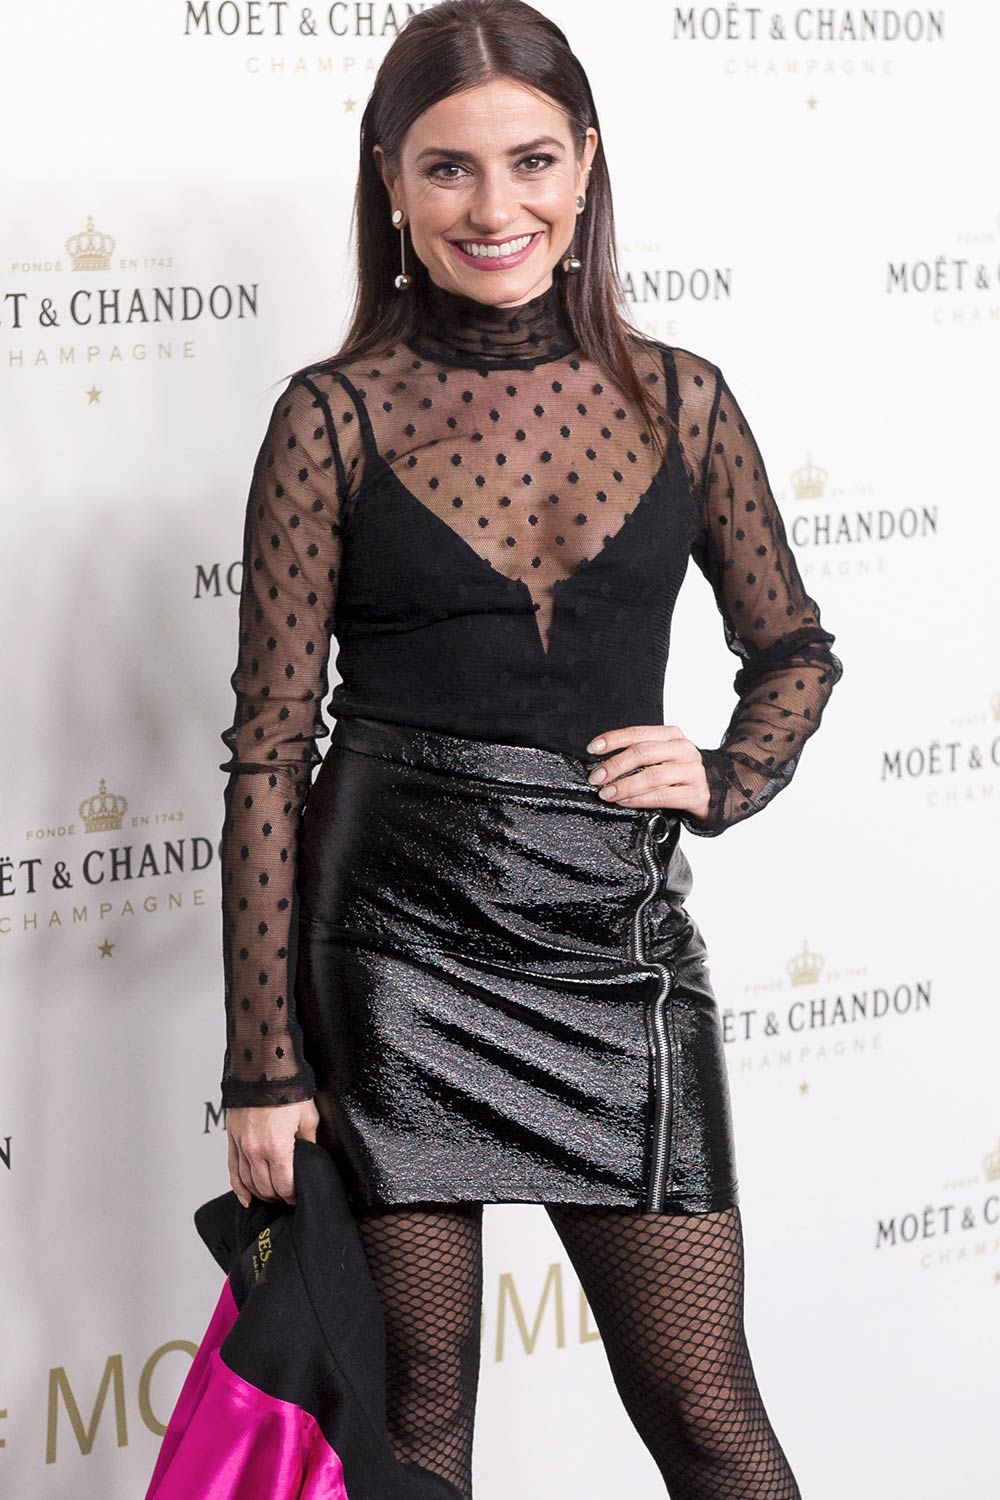 Anita del Rey attends the 'Moet & Chandon' New Year's ...